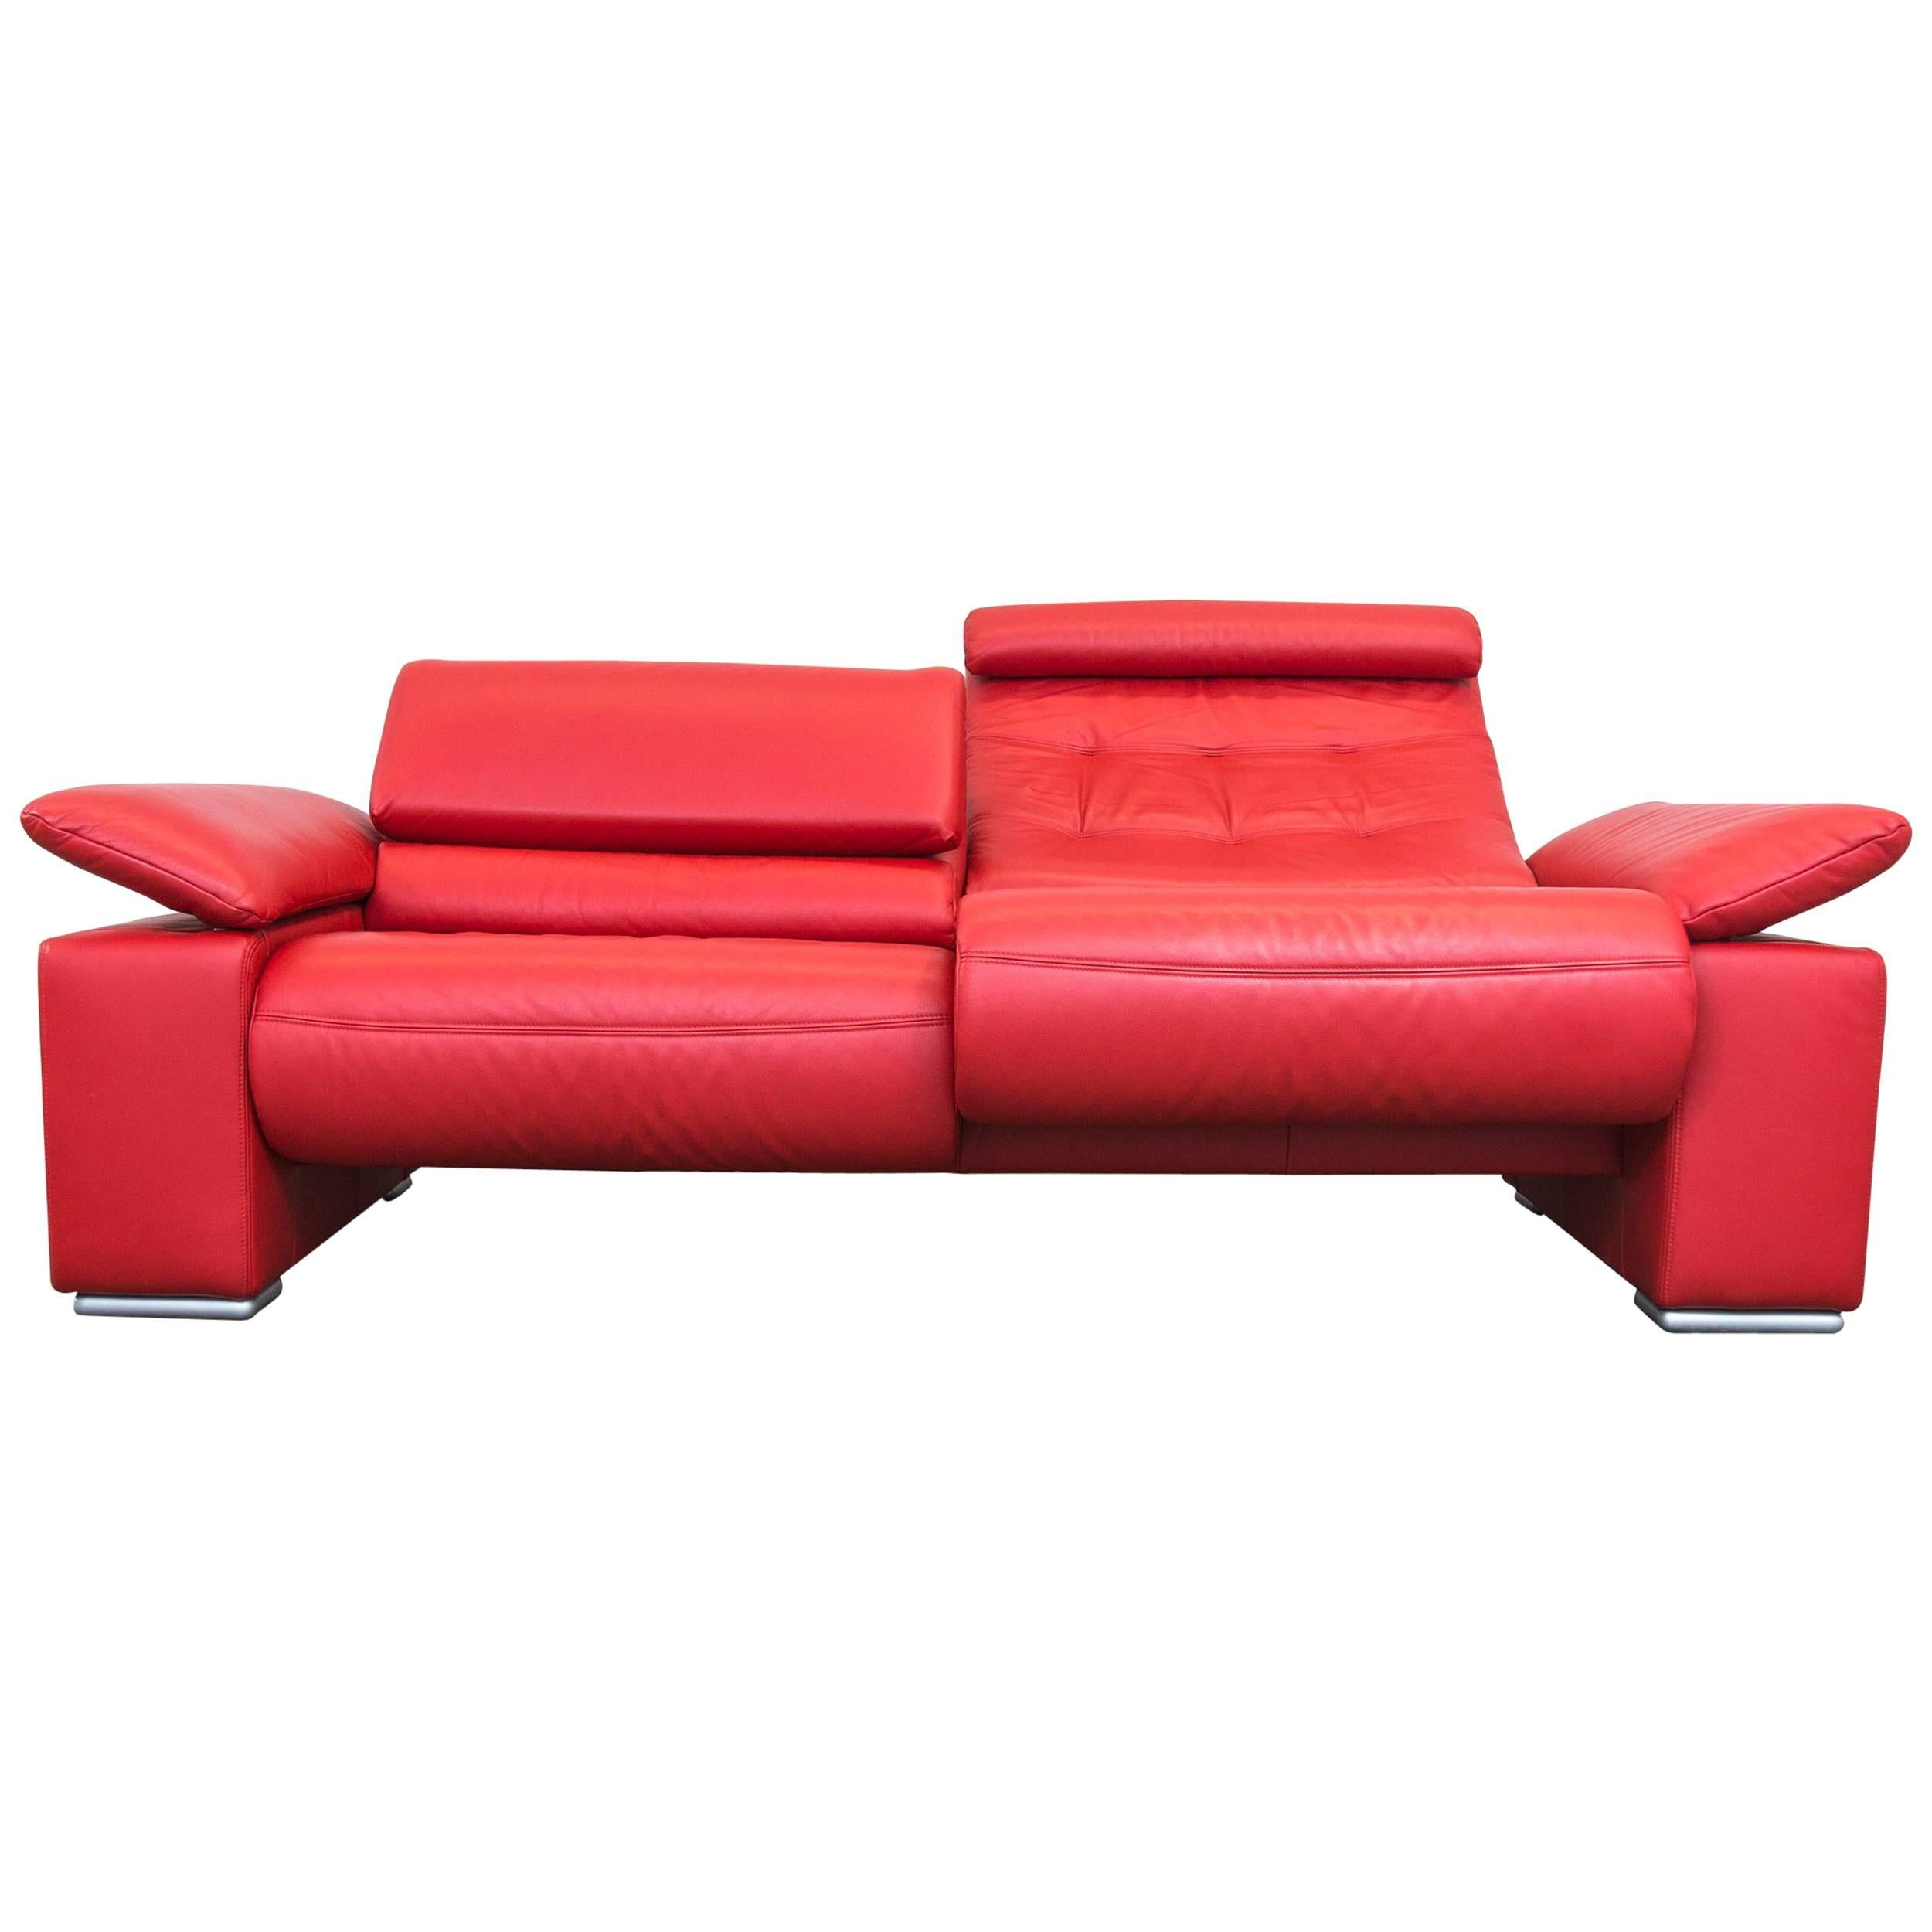 Corona Savena Designer Sofa Red Leather Two Seat Couch Function Modern